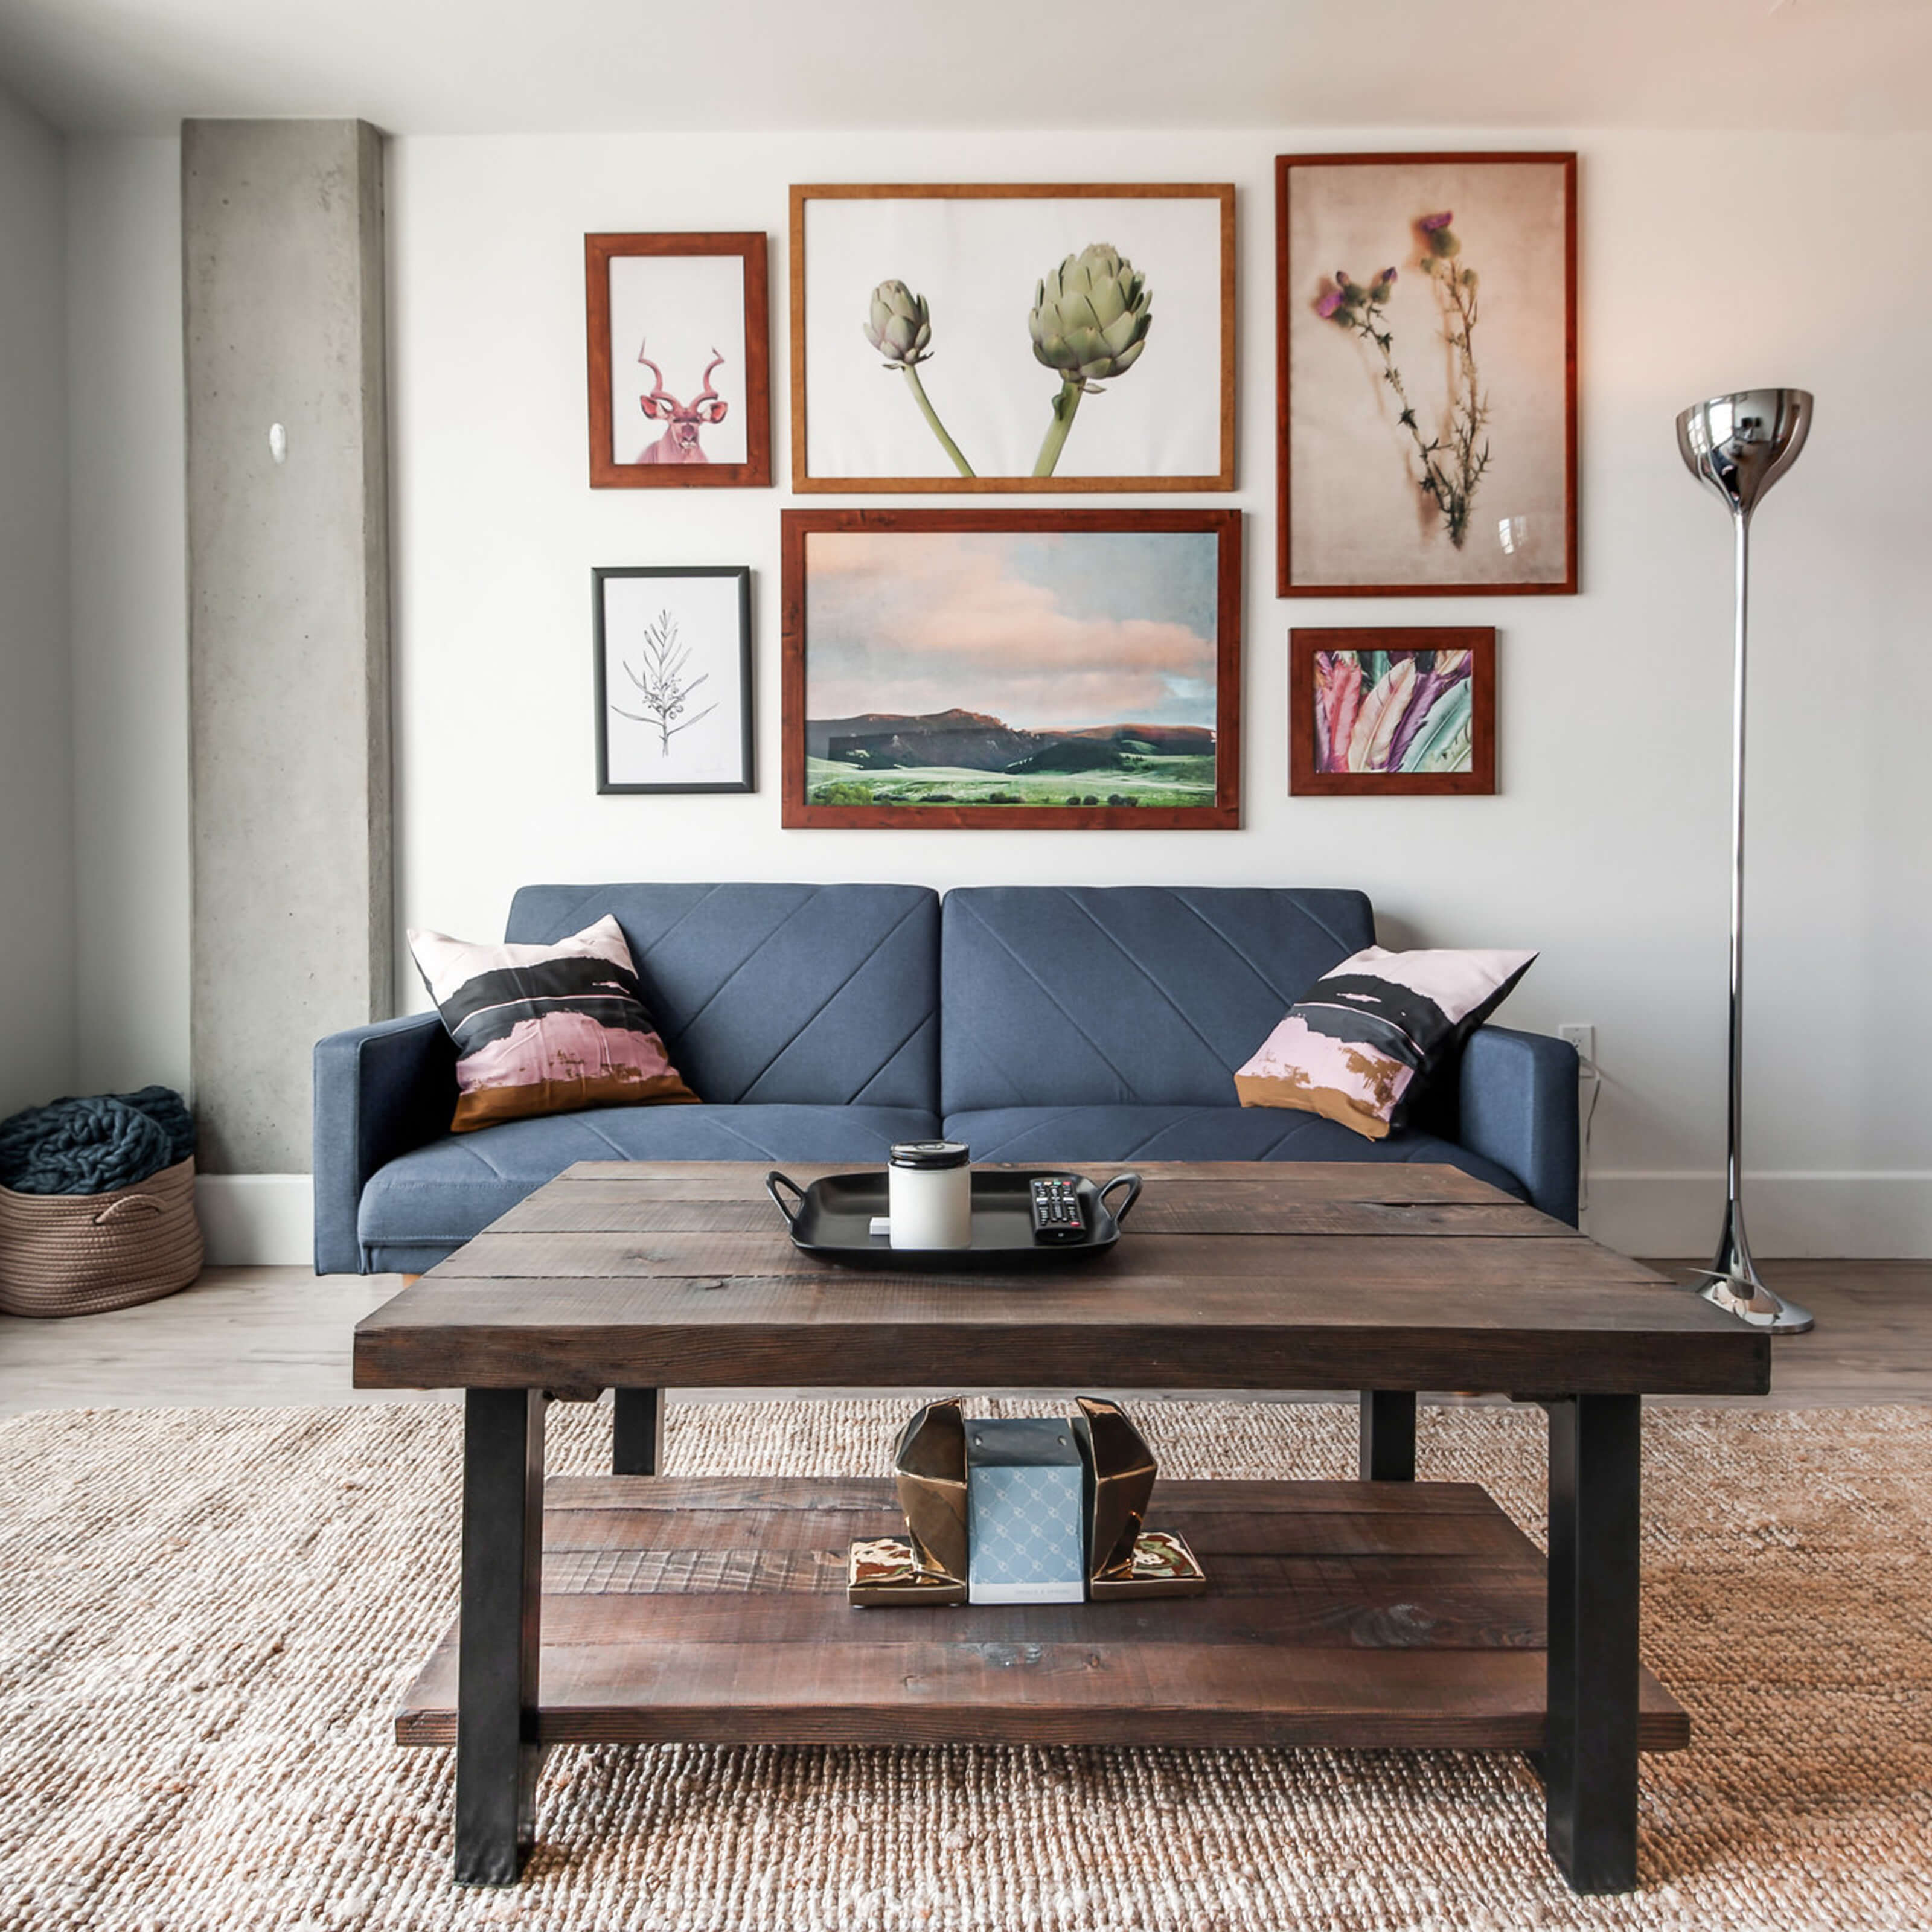 How to Improve a Space With a Gallery Wall